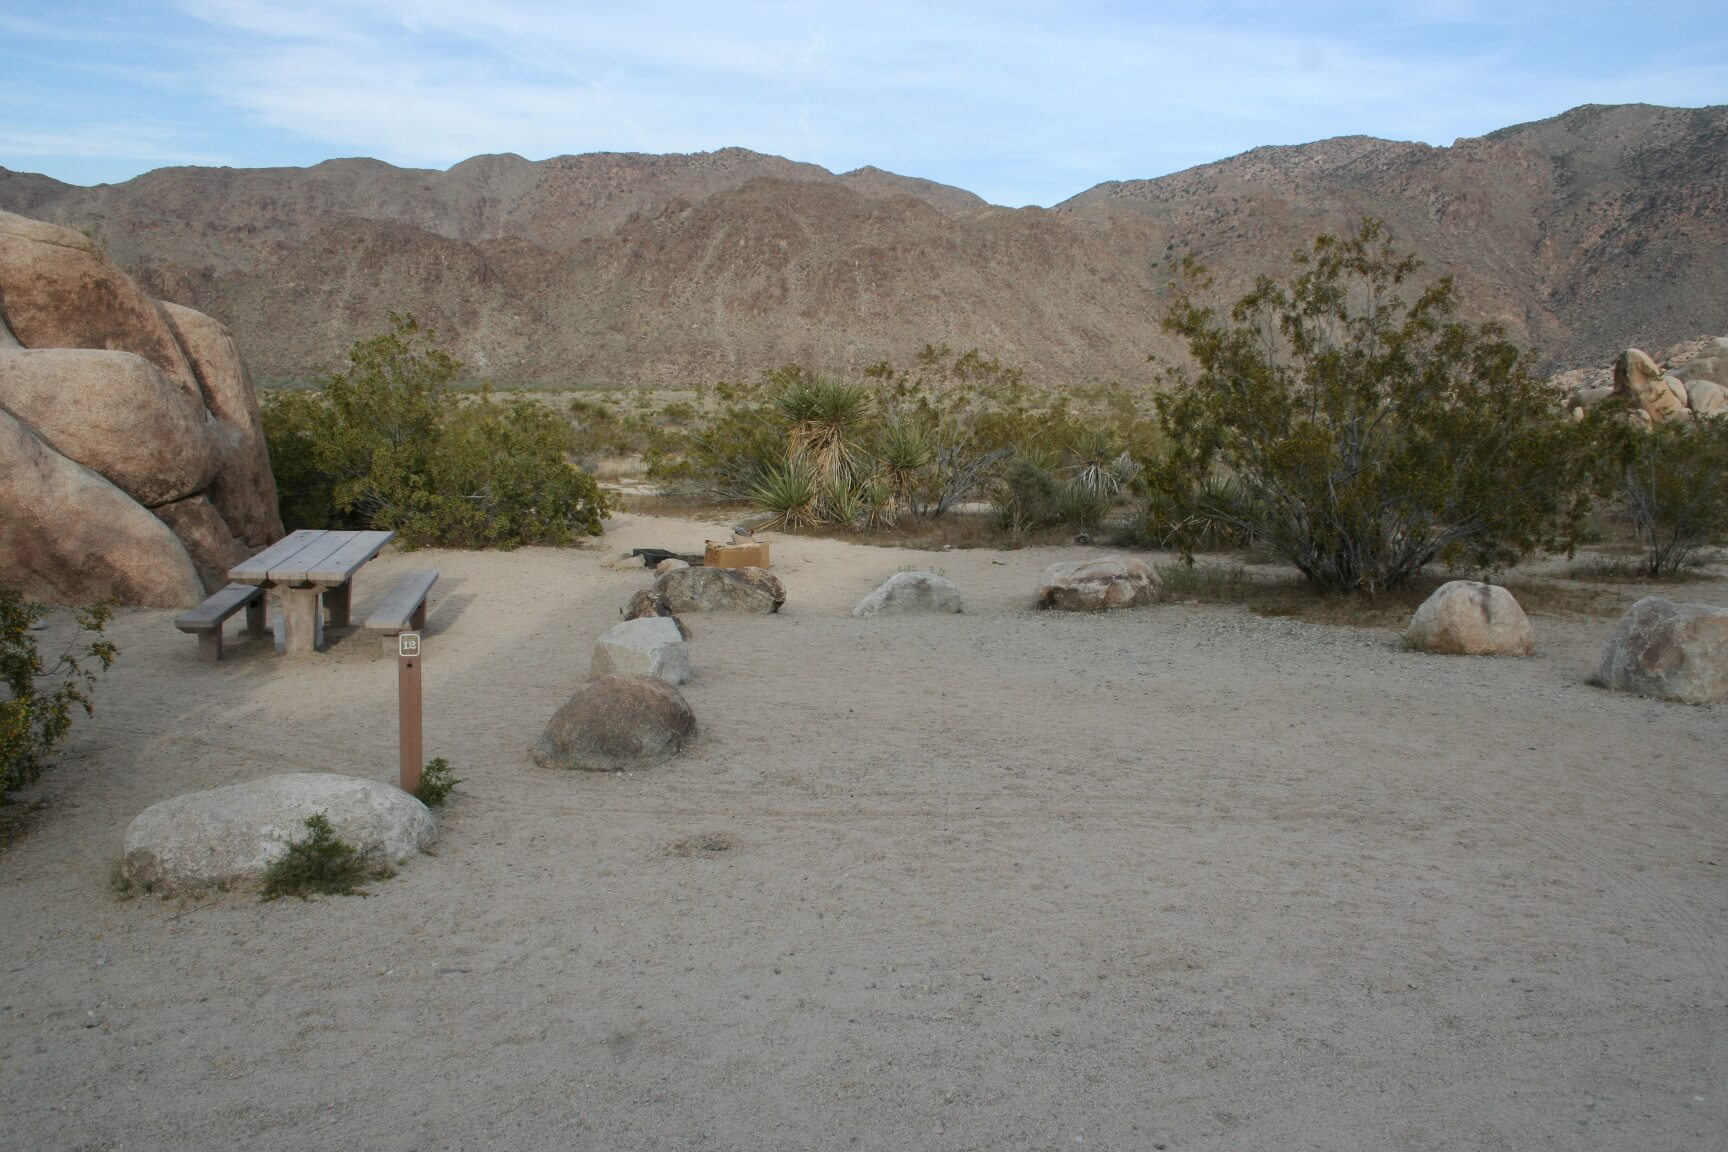 Joshua Tree National Park's Best Campsites Indian Cove #12